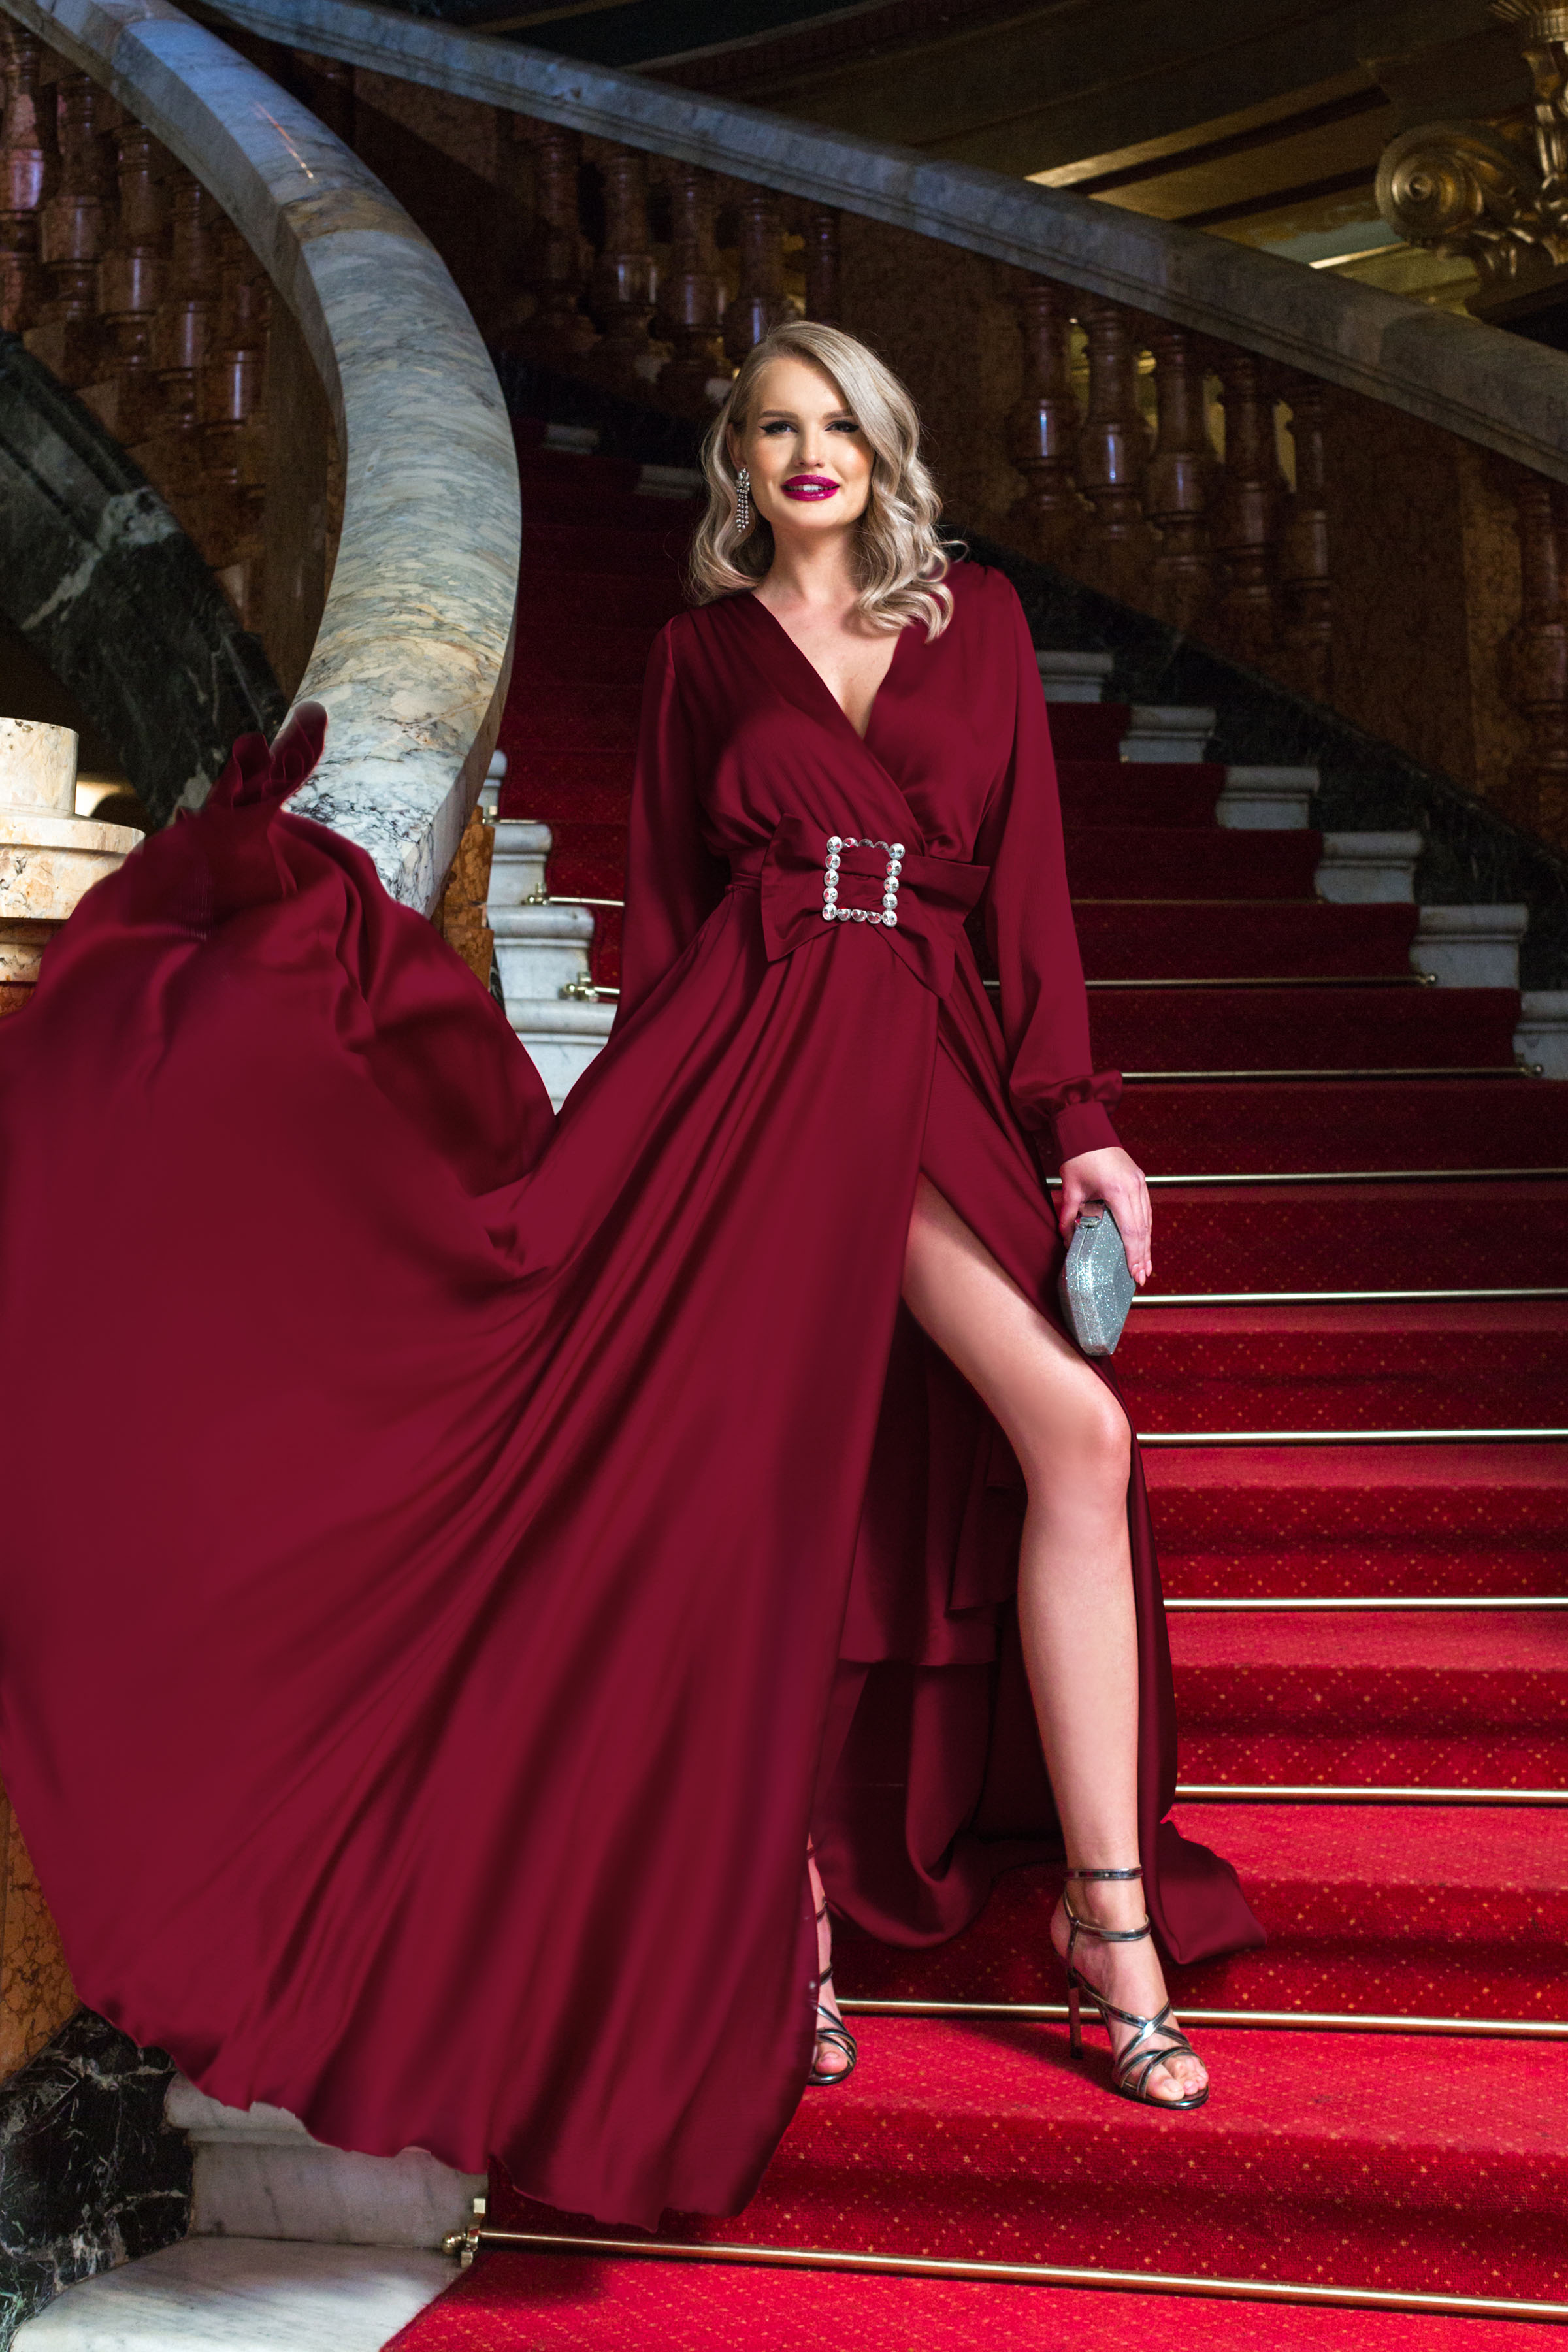 Dress burgundy long occasional cloche wrap over front with v-neckline buckle accessory slit